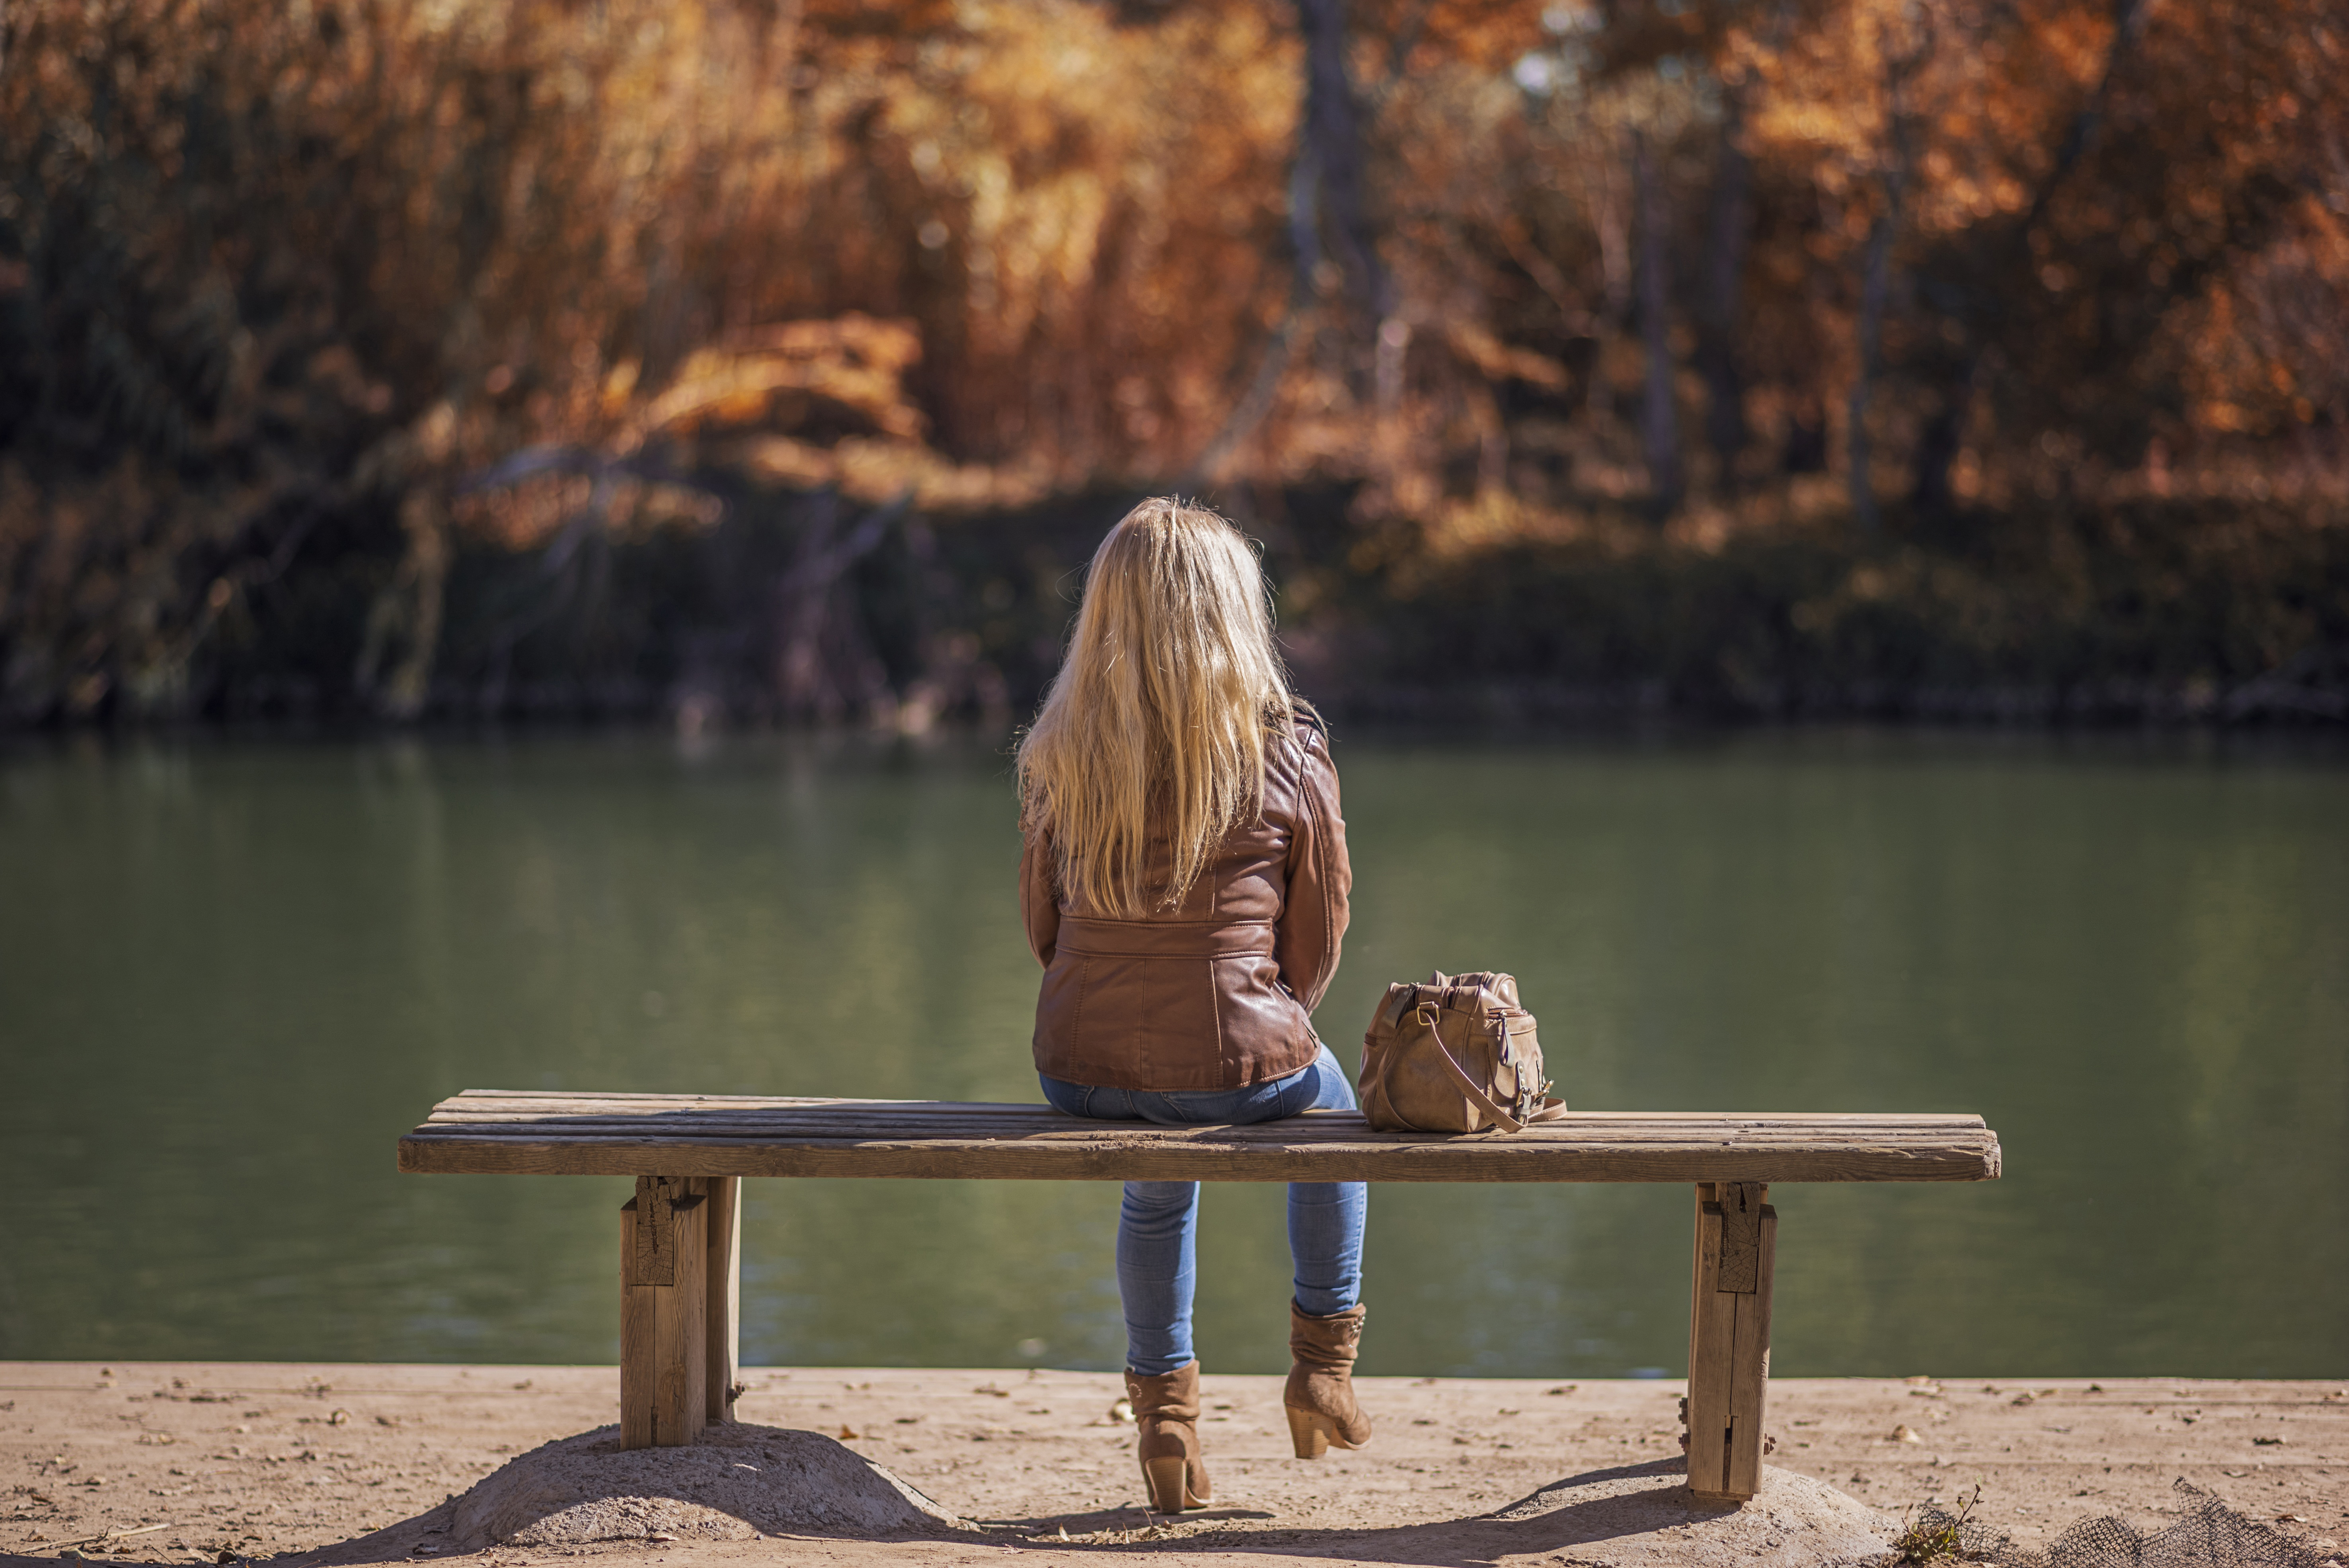 Alone girl,bench,women,lake